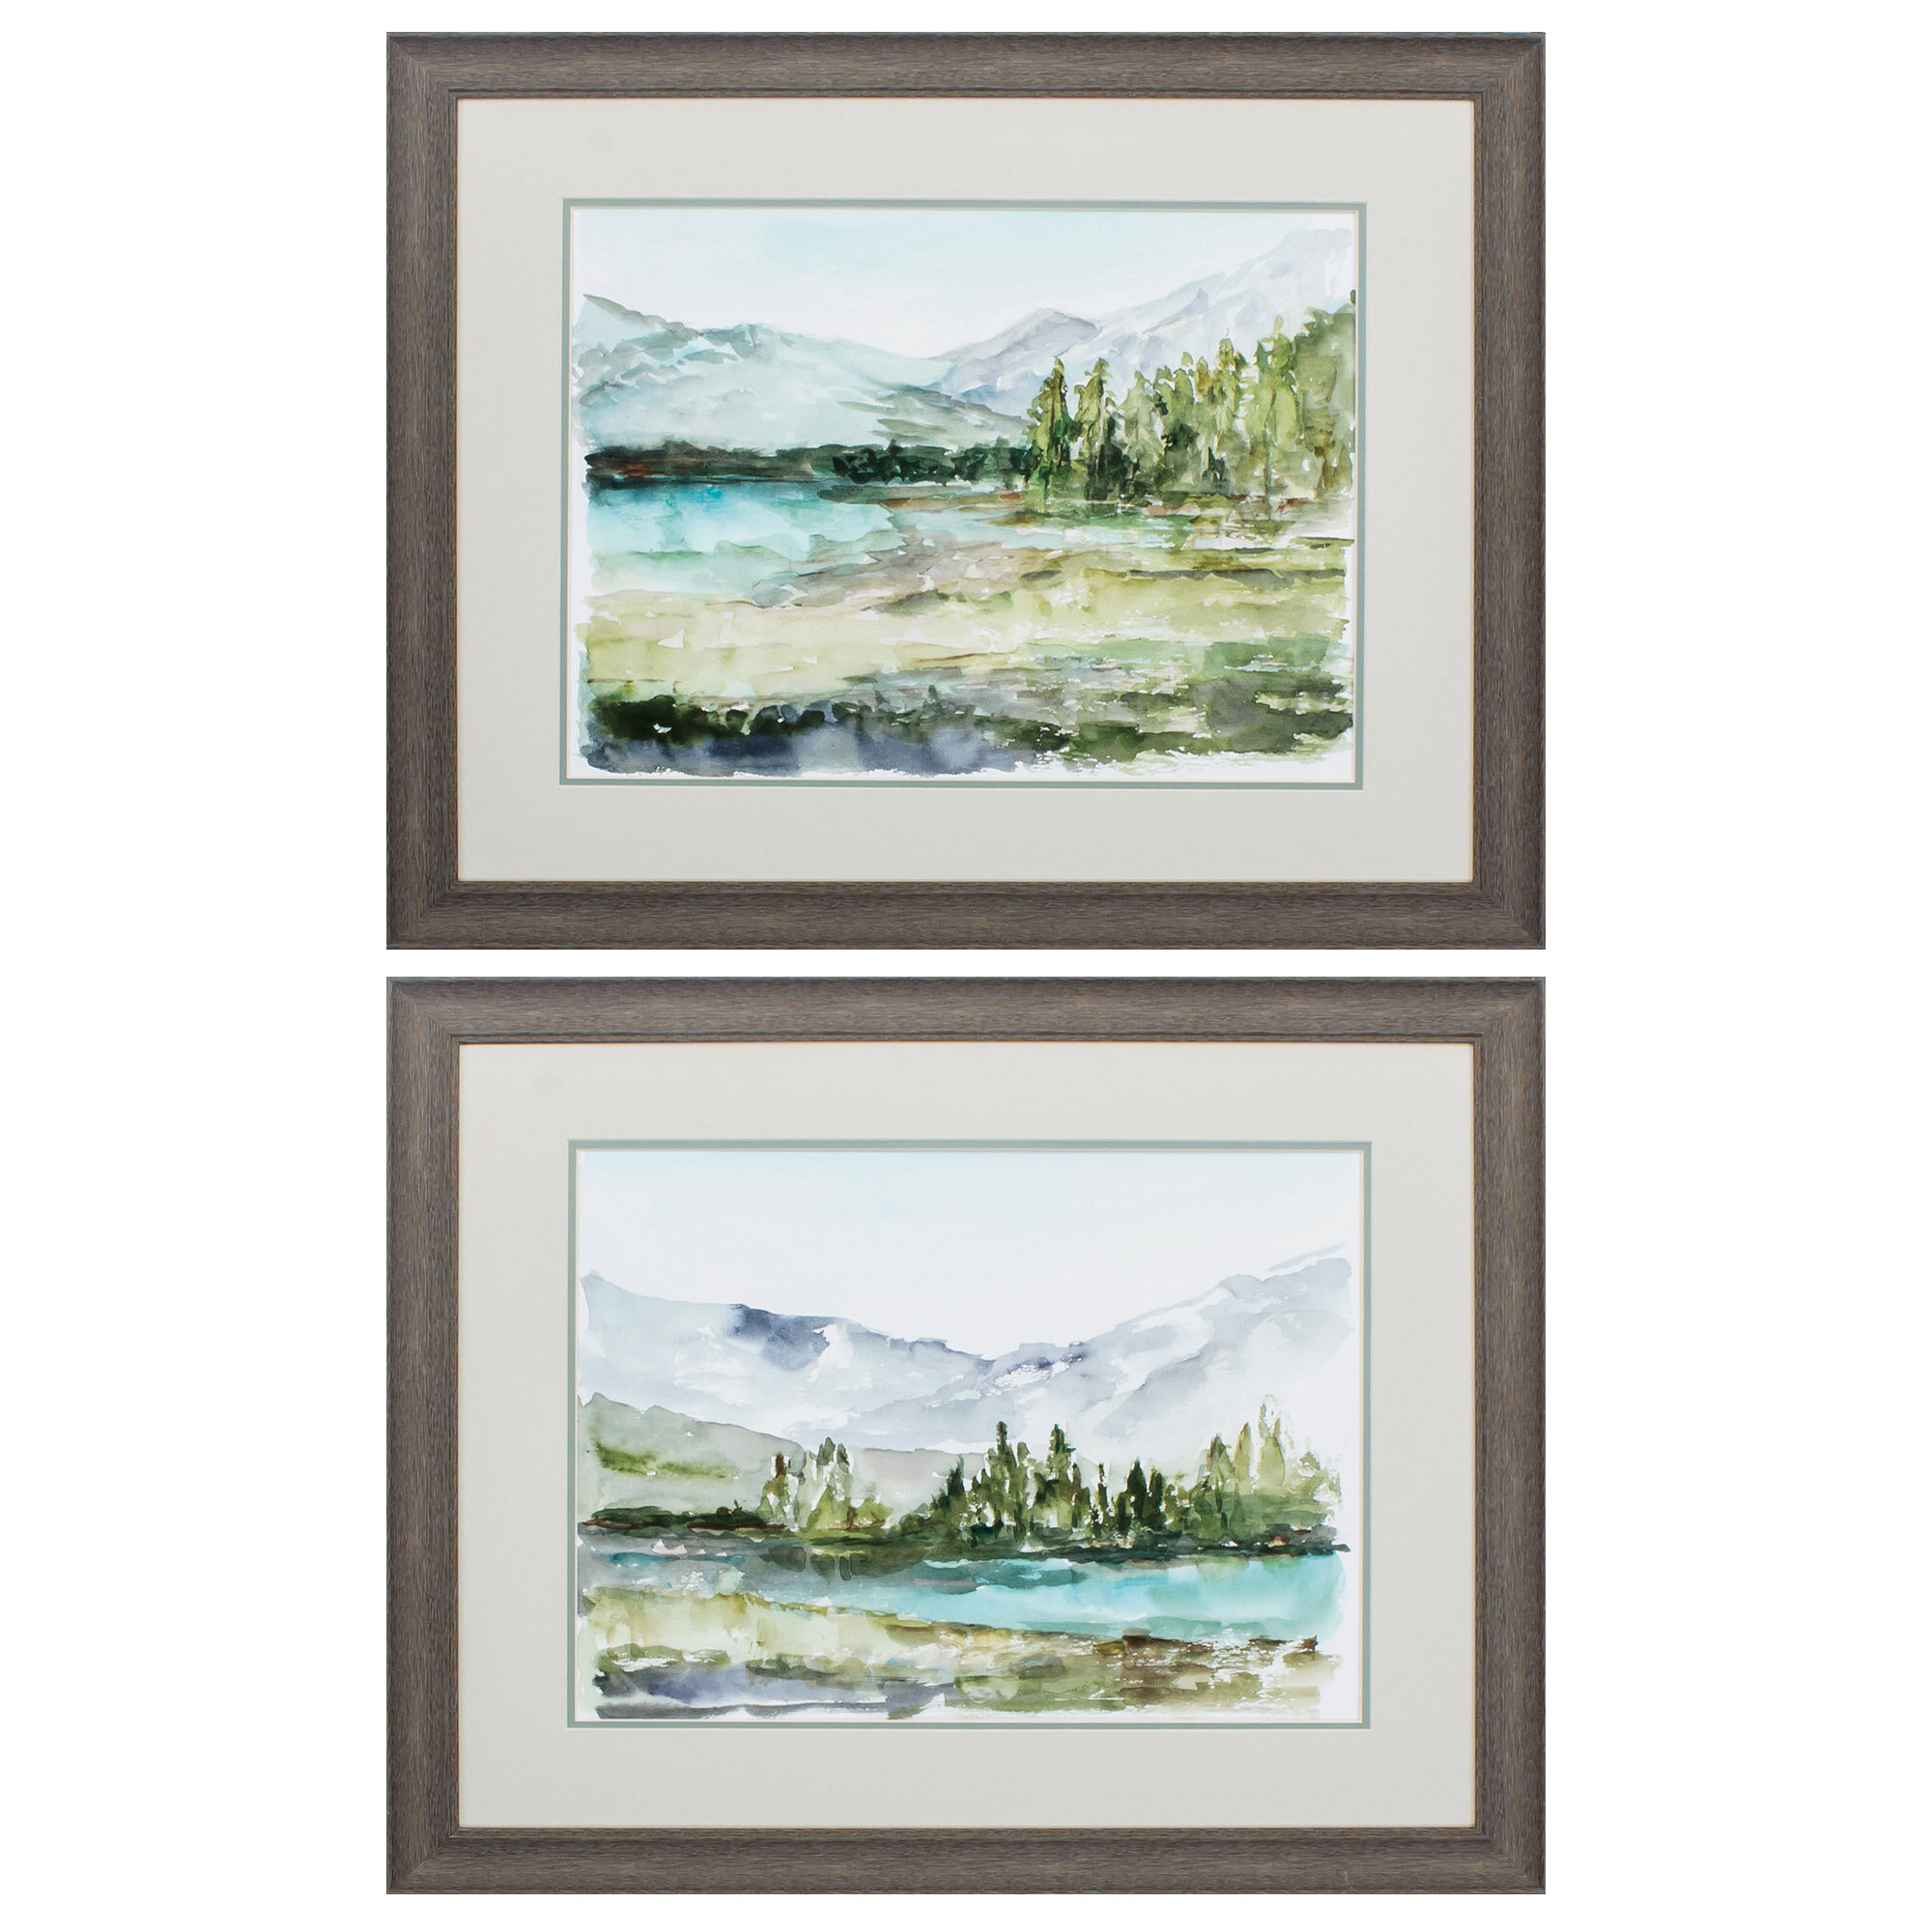 Framed Lakes Rivers Wall Art You Ll Love In 2021 Wayfair